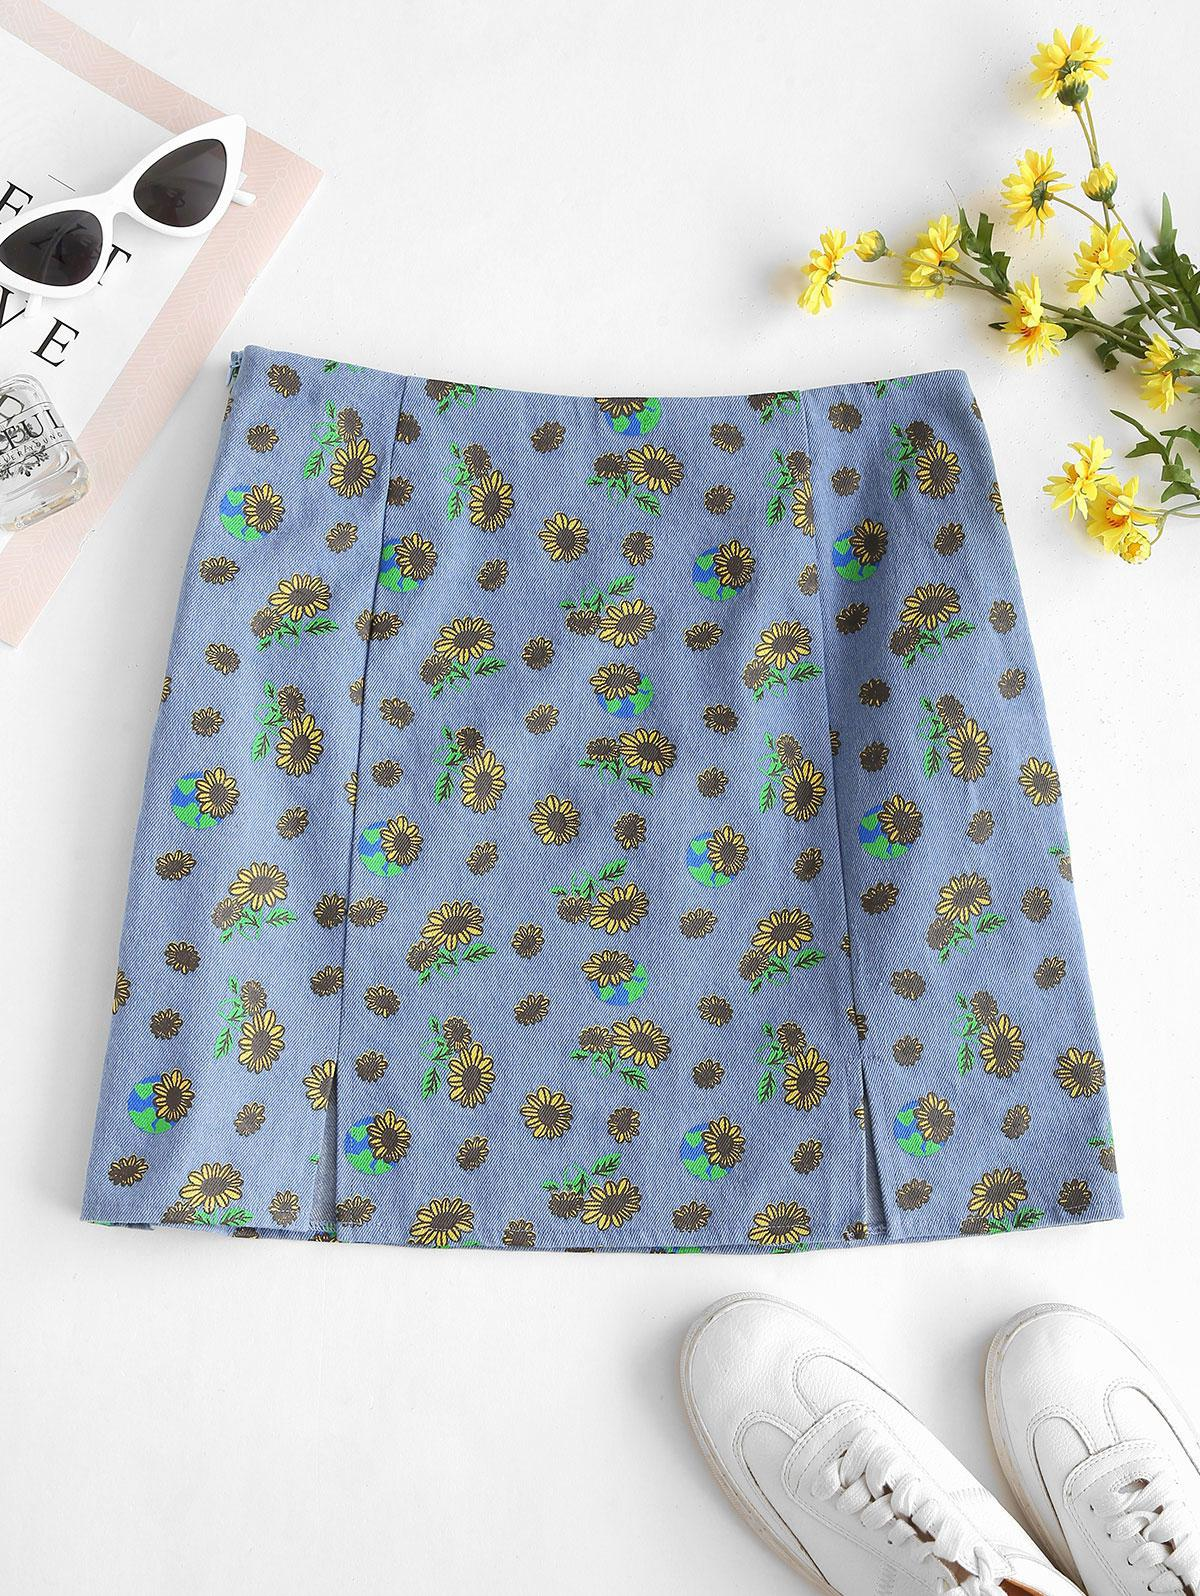 ZAFUL M-slit Sunflower Print Denim Skirt